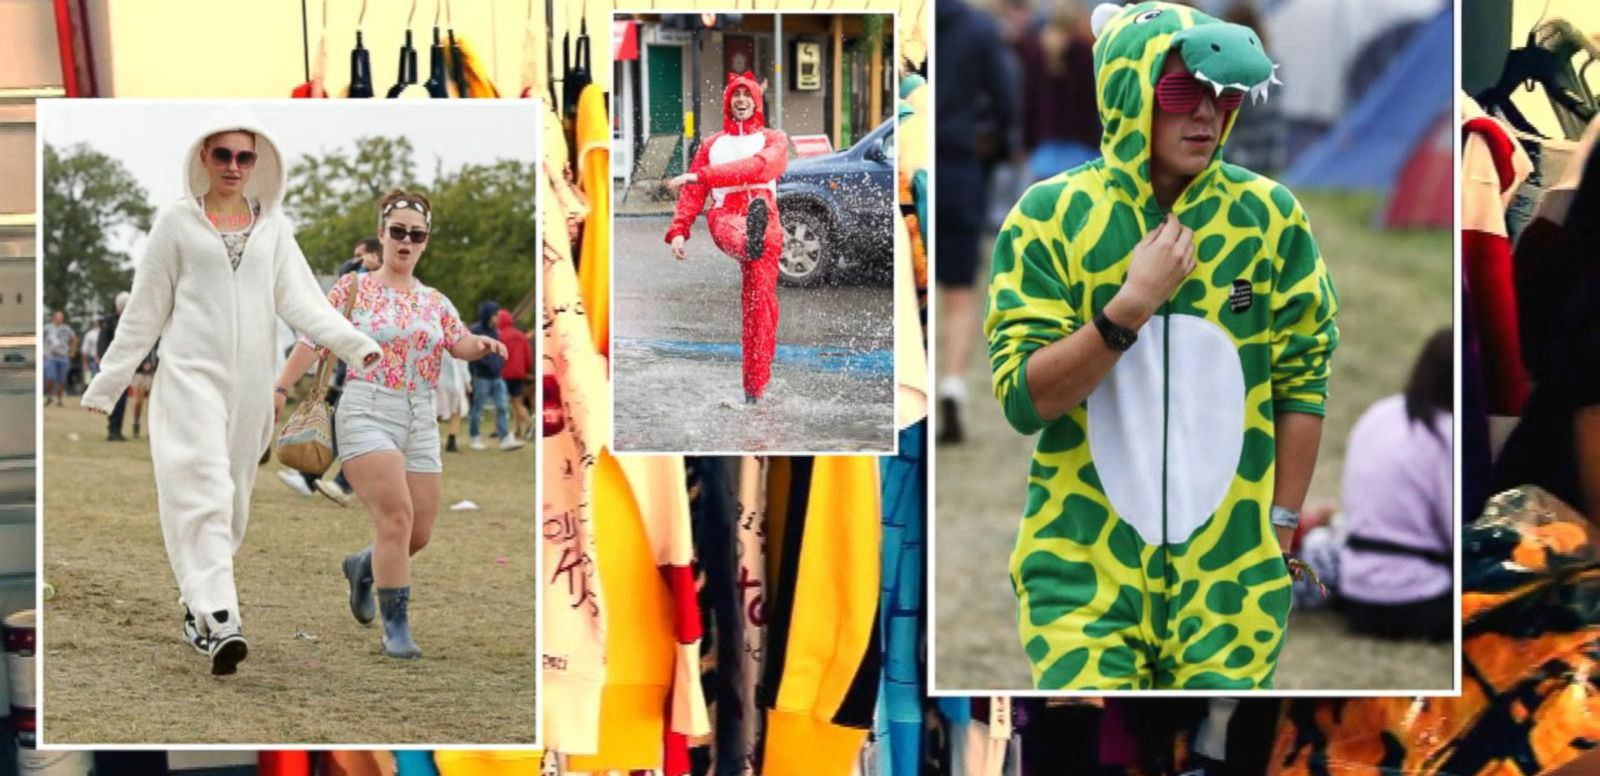 VIDEO: Would You Rock a 'Onesie'? Trend Combines Convenience, High-Fashion